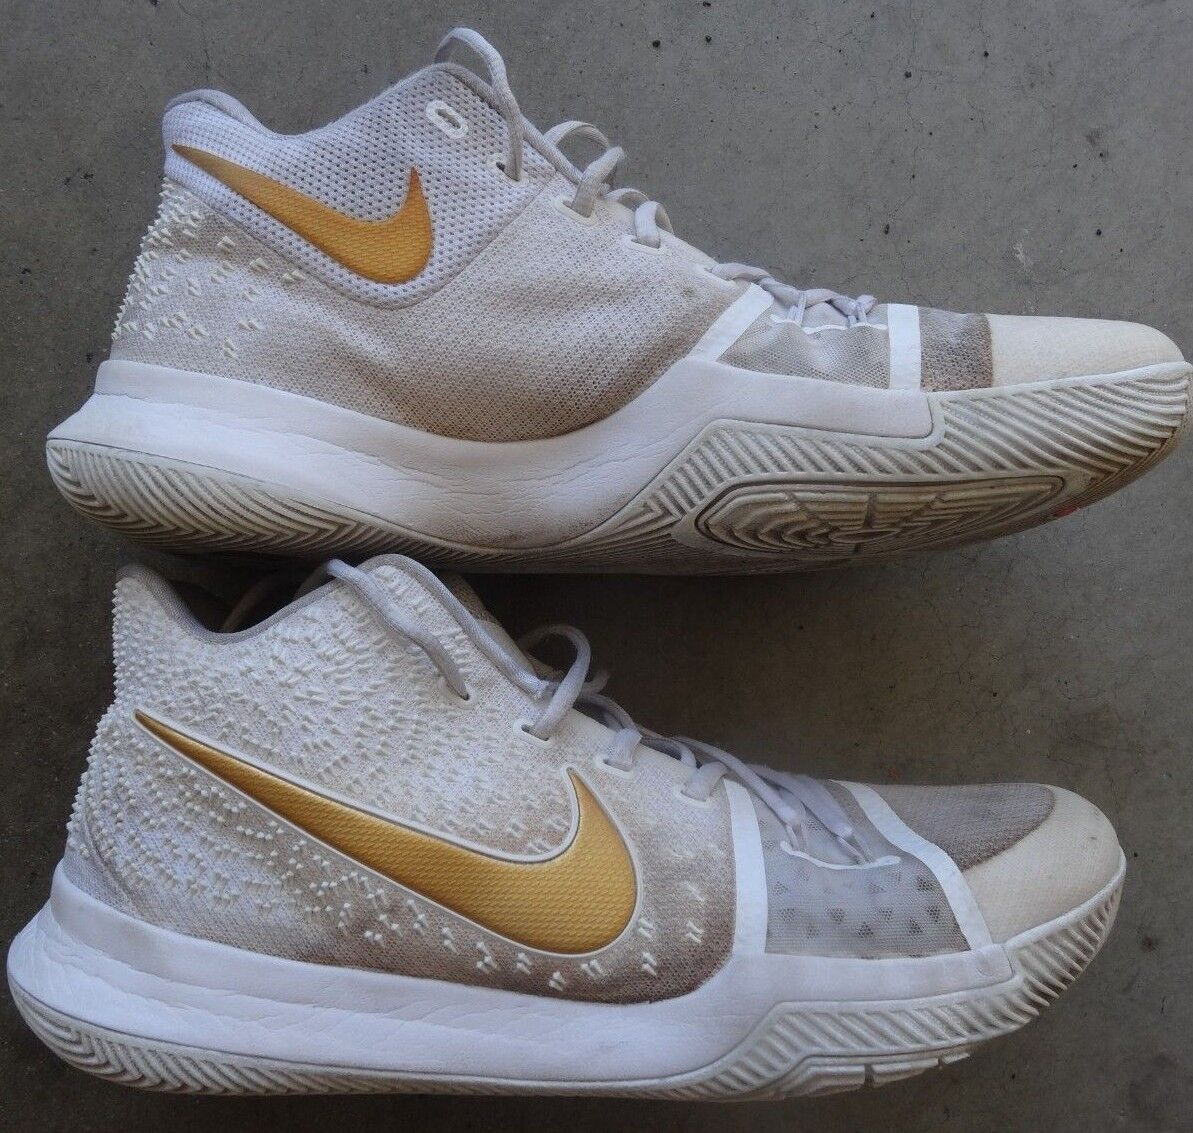 brand new 4ac83 b5b5e where can i buy nike air zoom kyrie irving iii 3 ep white finals multi color